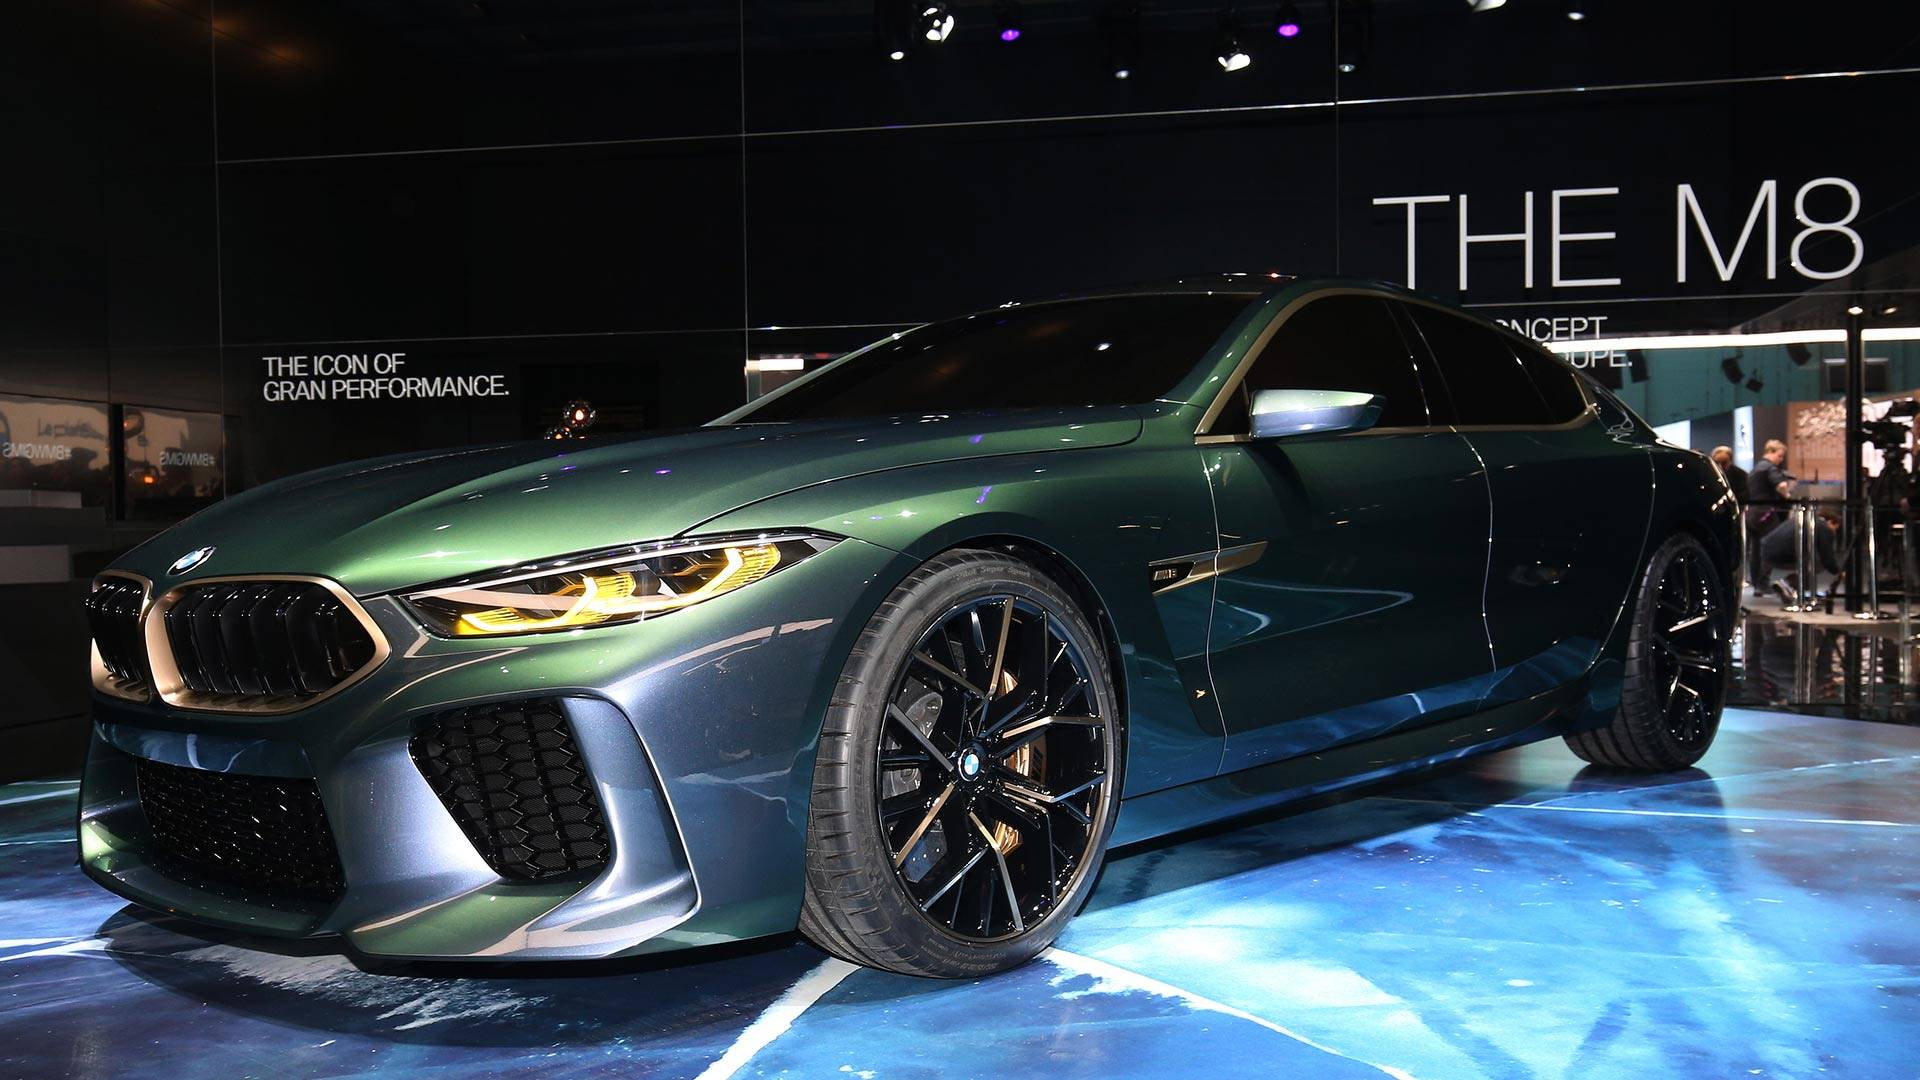 The car changes colors like a chameleon and should reach production next year, although prices remain unknown